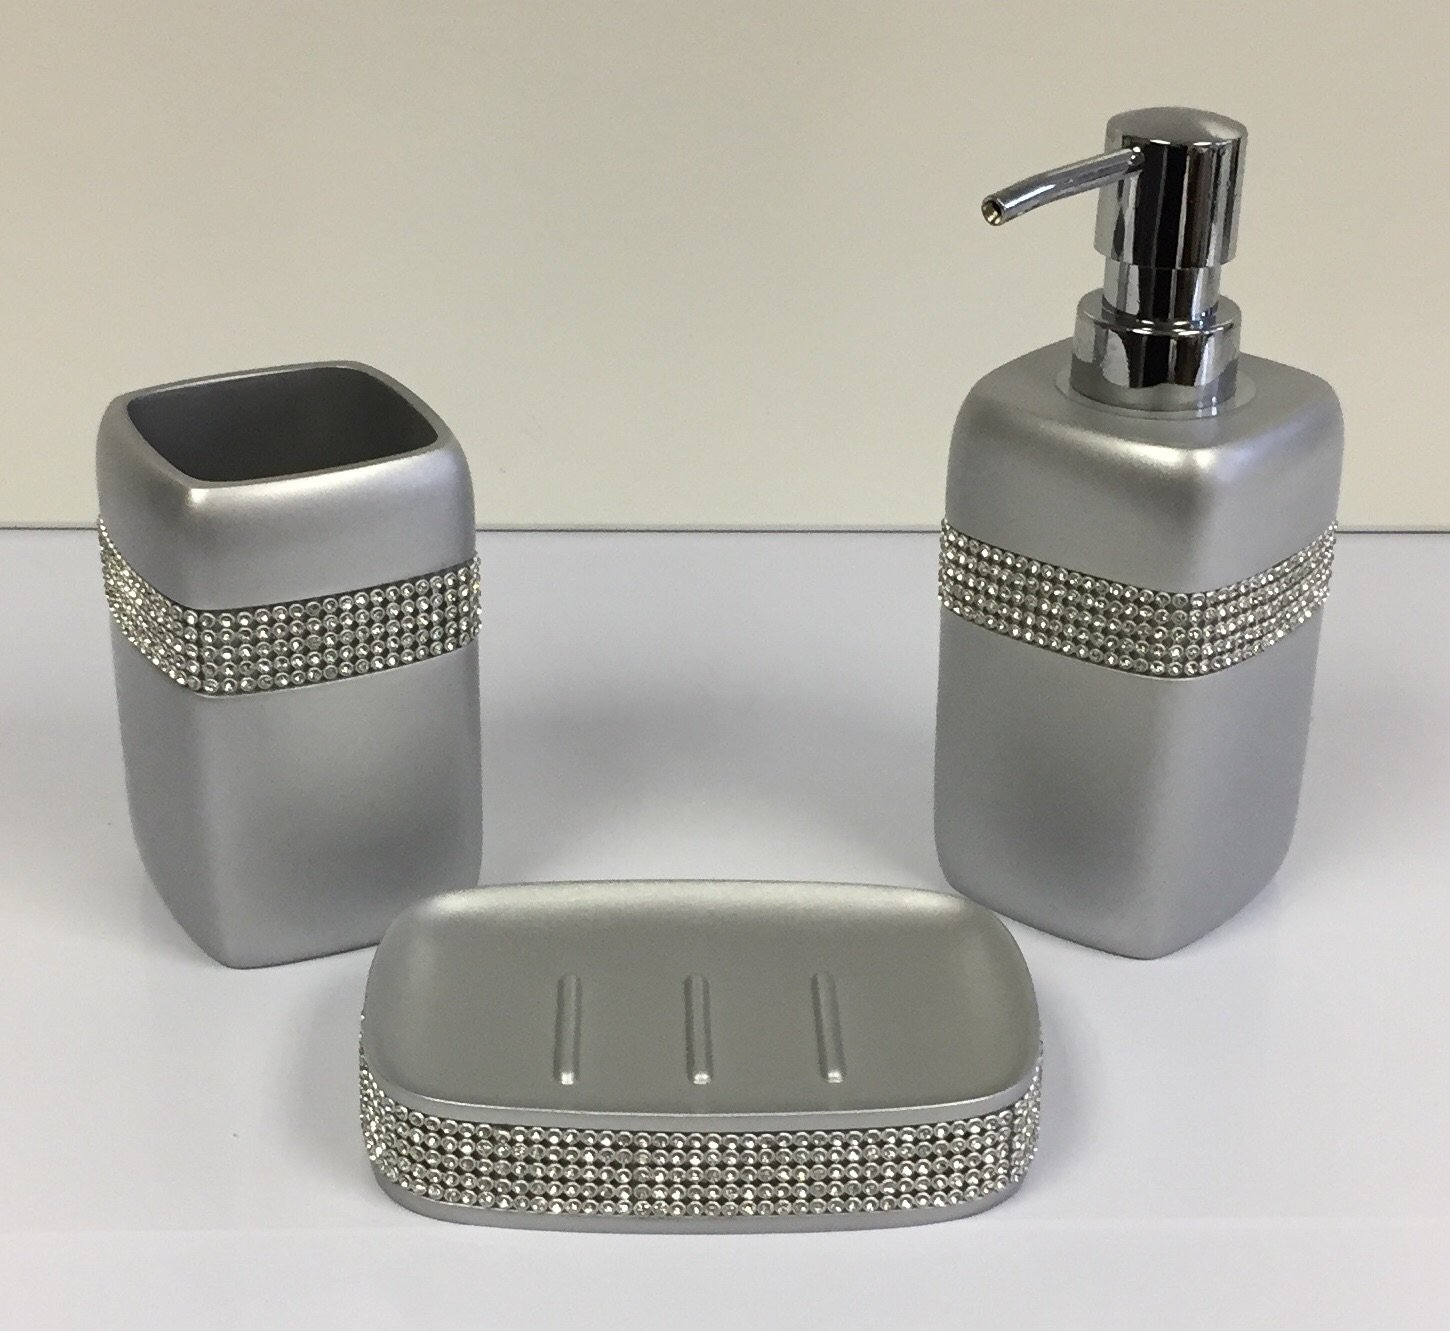 Set Of 3 Silver Diamante Bathroom Set - Soap Dish - Toothbrush Holder - Soap Dispenser MissDishh